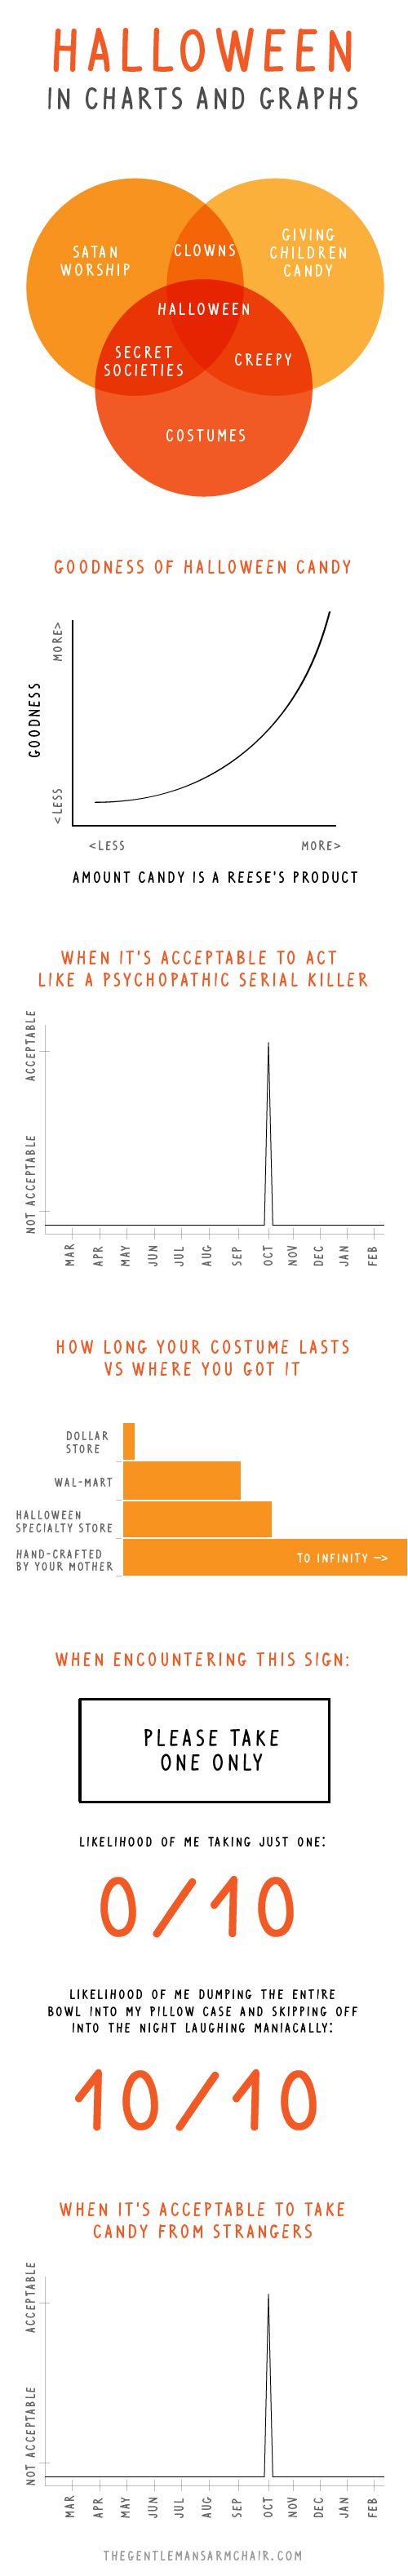 Halloween in Charts and Graphs